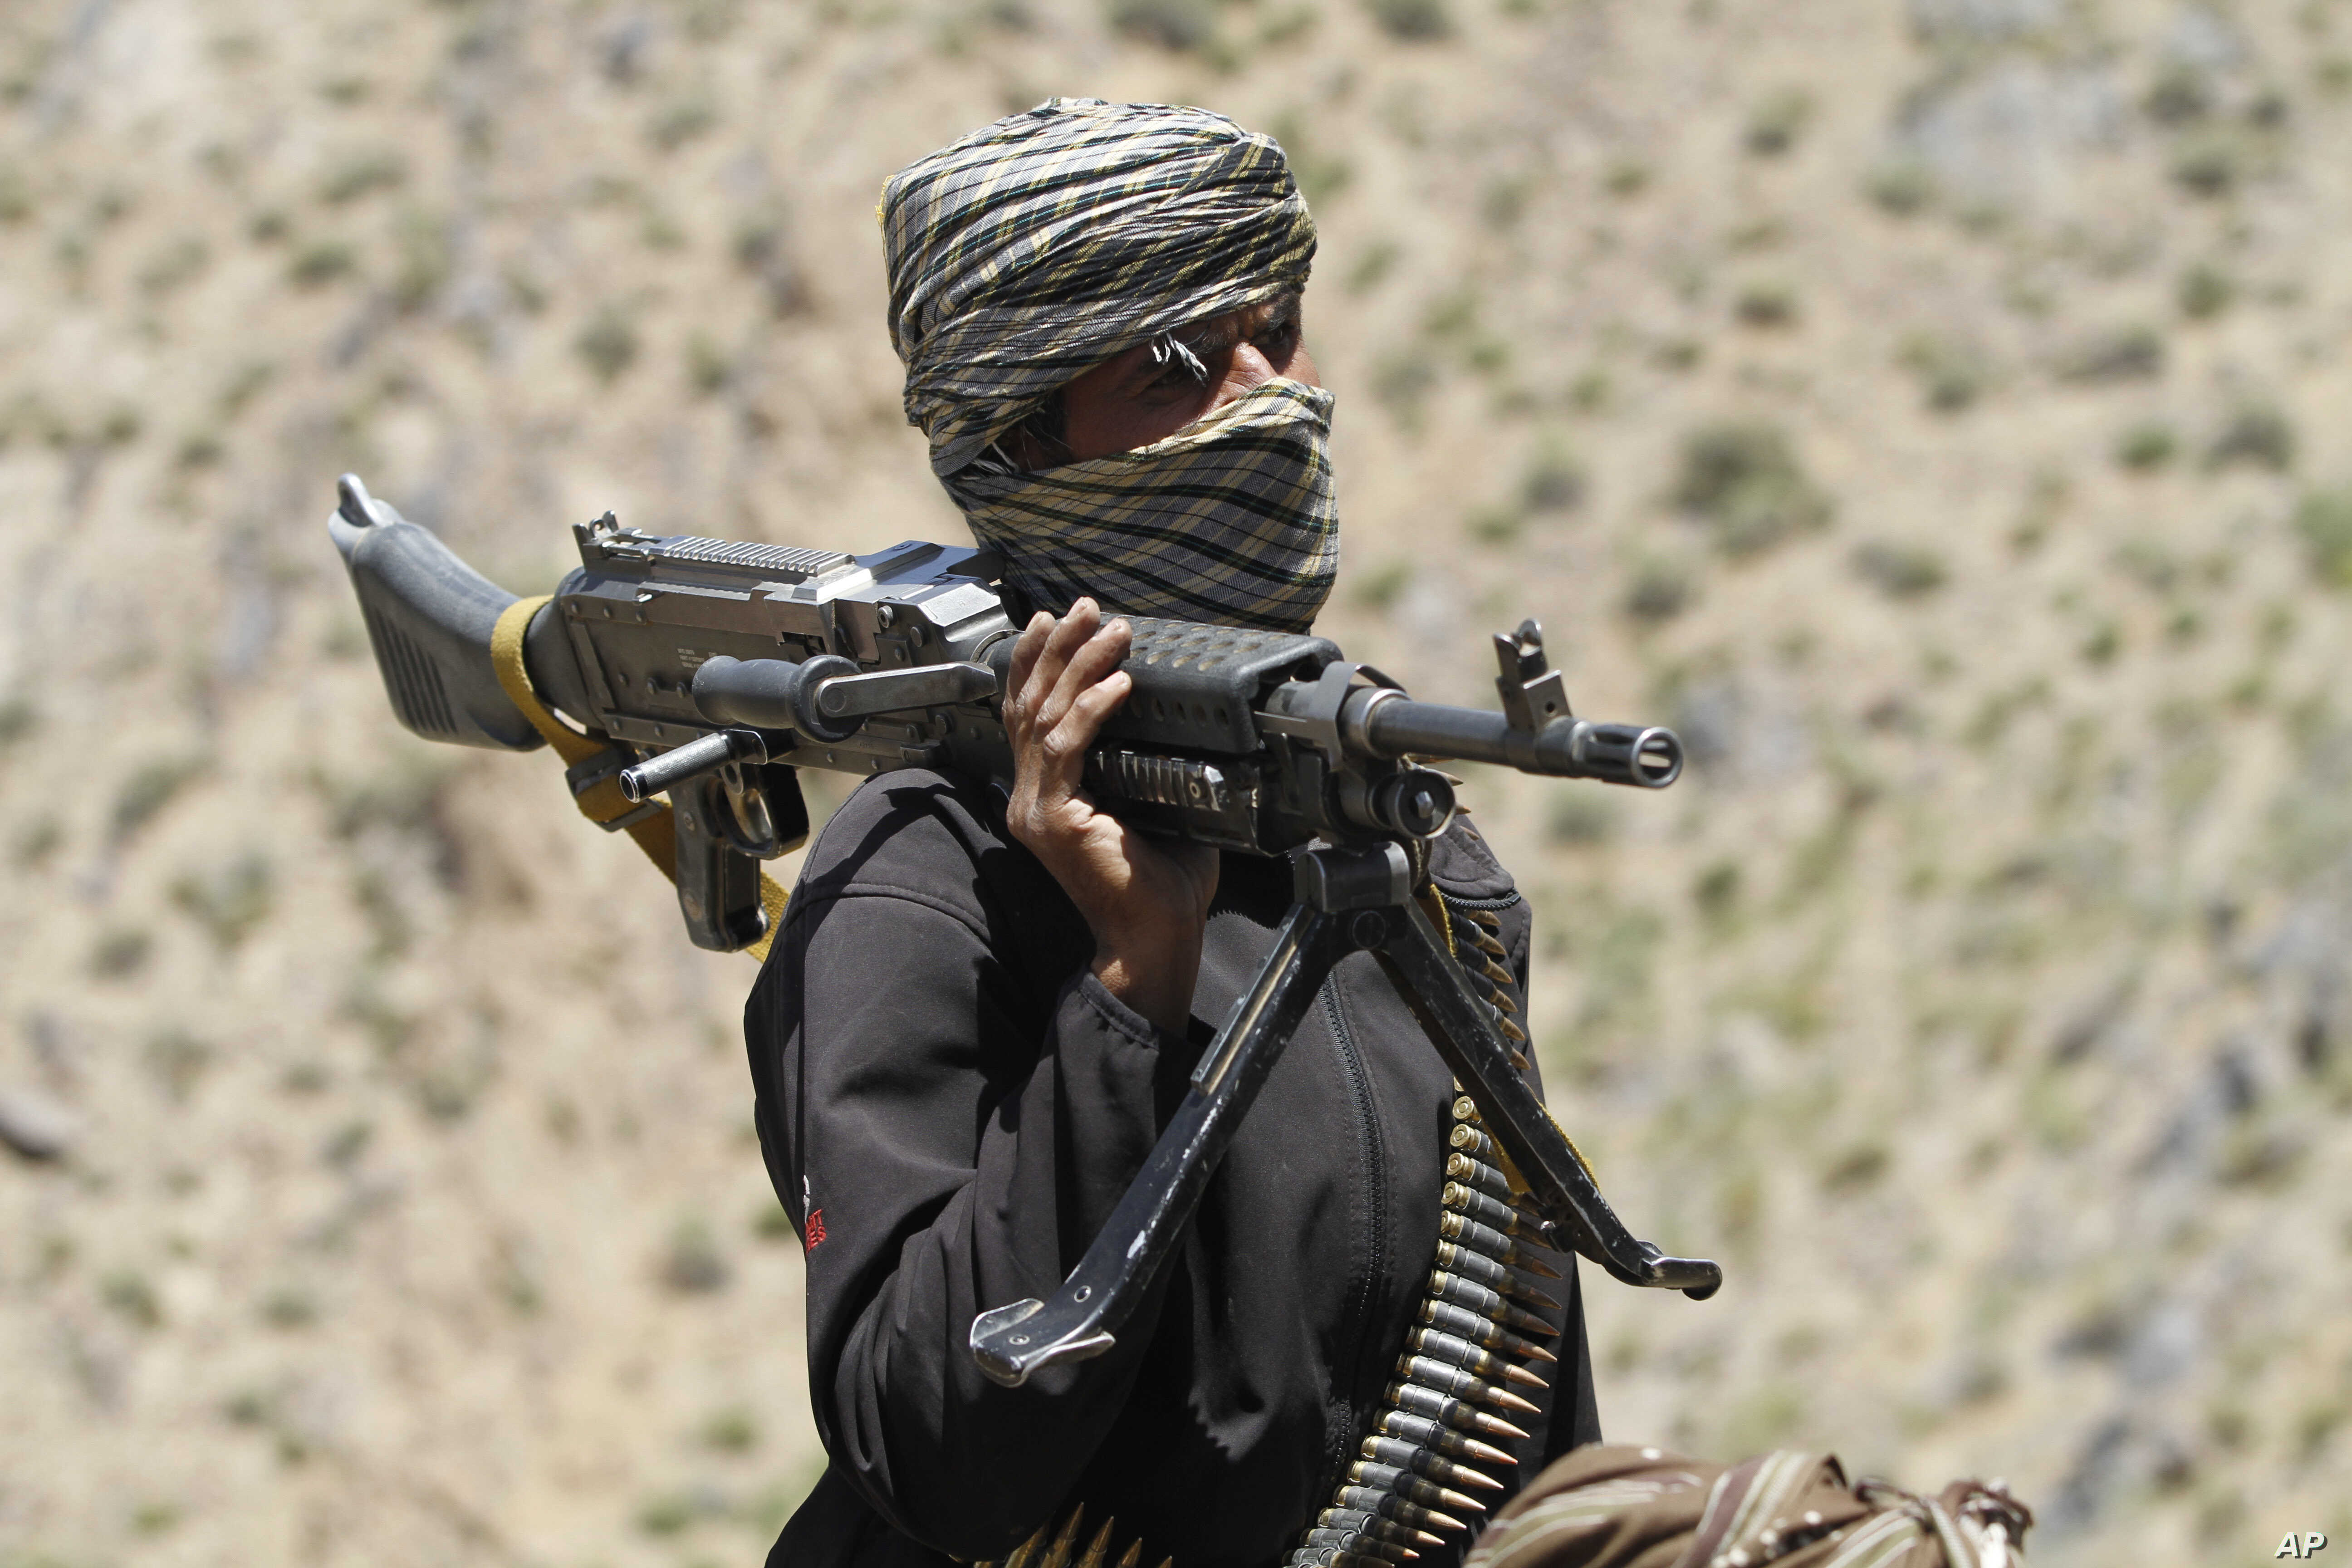 FILE - In this May 27, 2016 file photo, a member of a breakaway faction of the Taliban fighters guards a gathering in Shindand district of Herat province, Afghanistan.